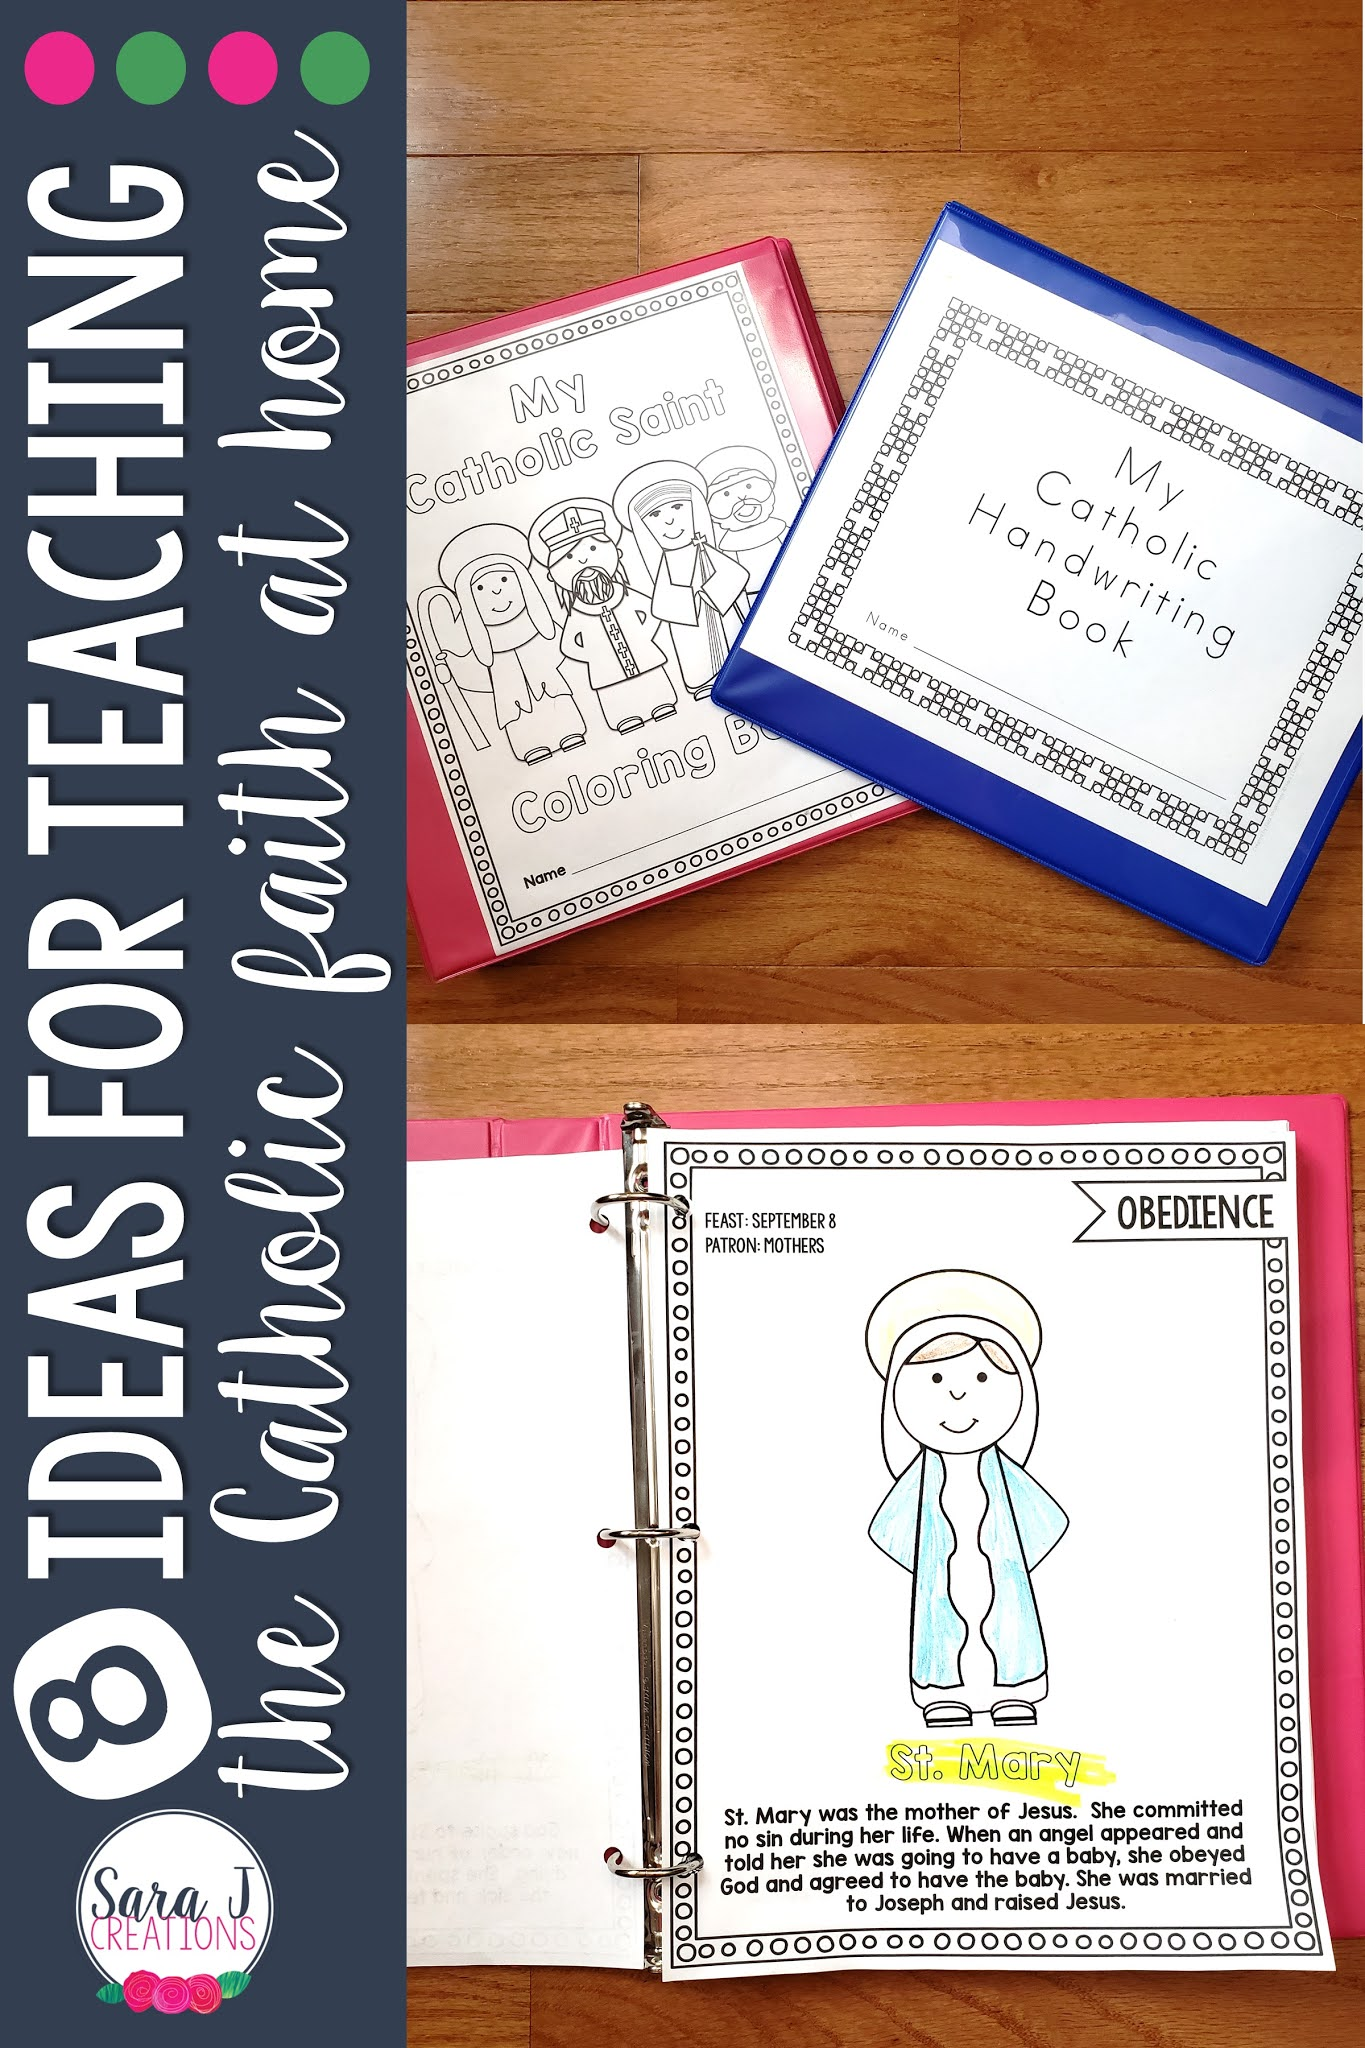 Simple ideas for incorporating the Catholic faith into your home. Perfect for homeschoolers and non homeschoolers alike.